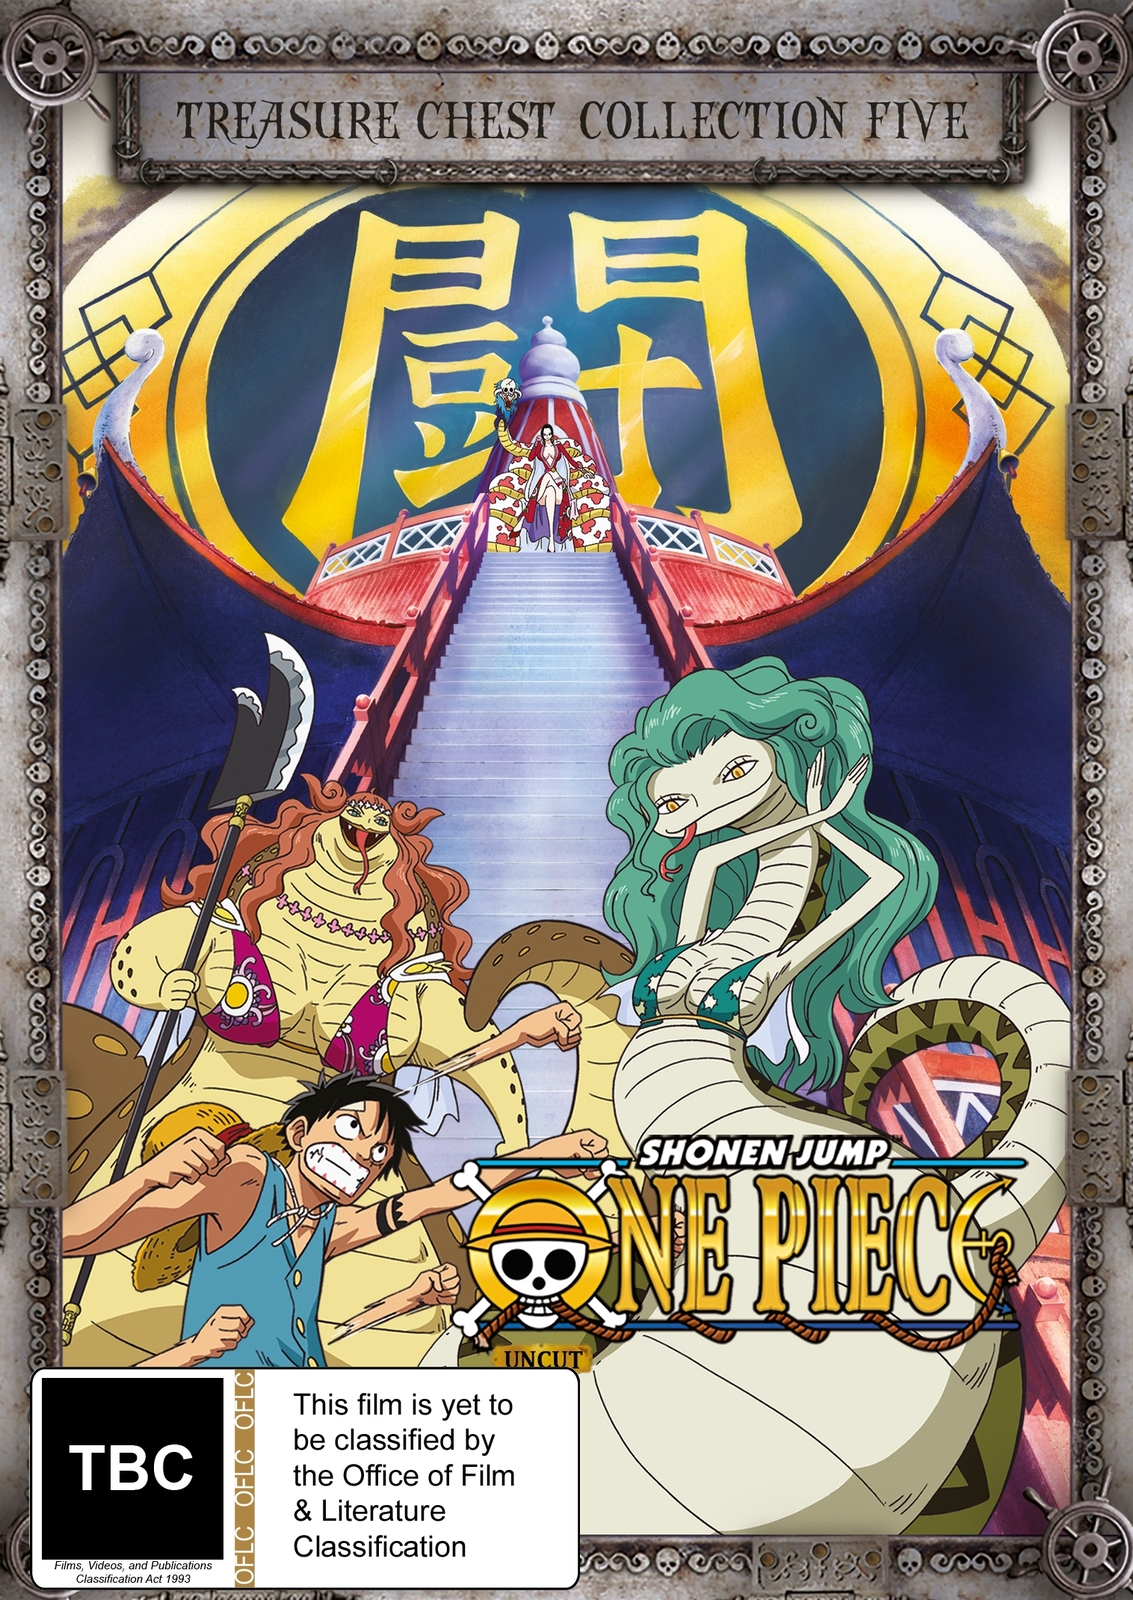 One Piece (Uncut) - Treasure Chest Collection #5 on DVD image